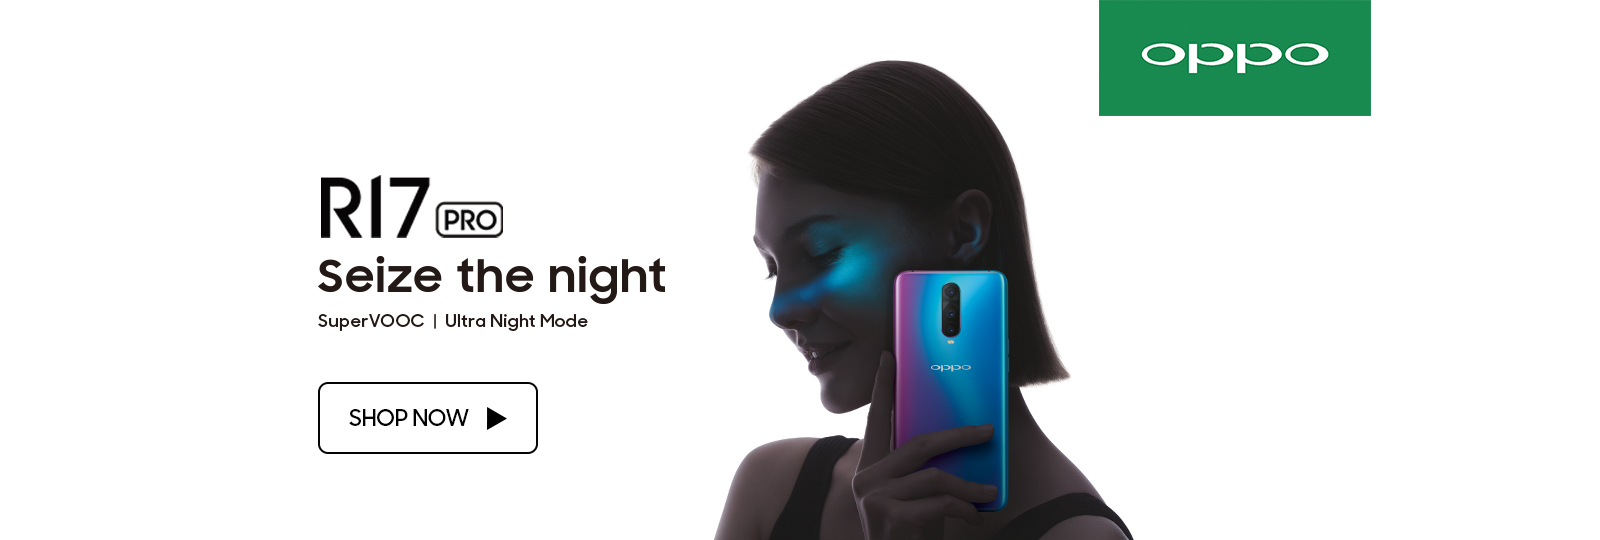 OPPO R17 & R17 Pro - Seize the Night